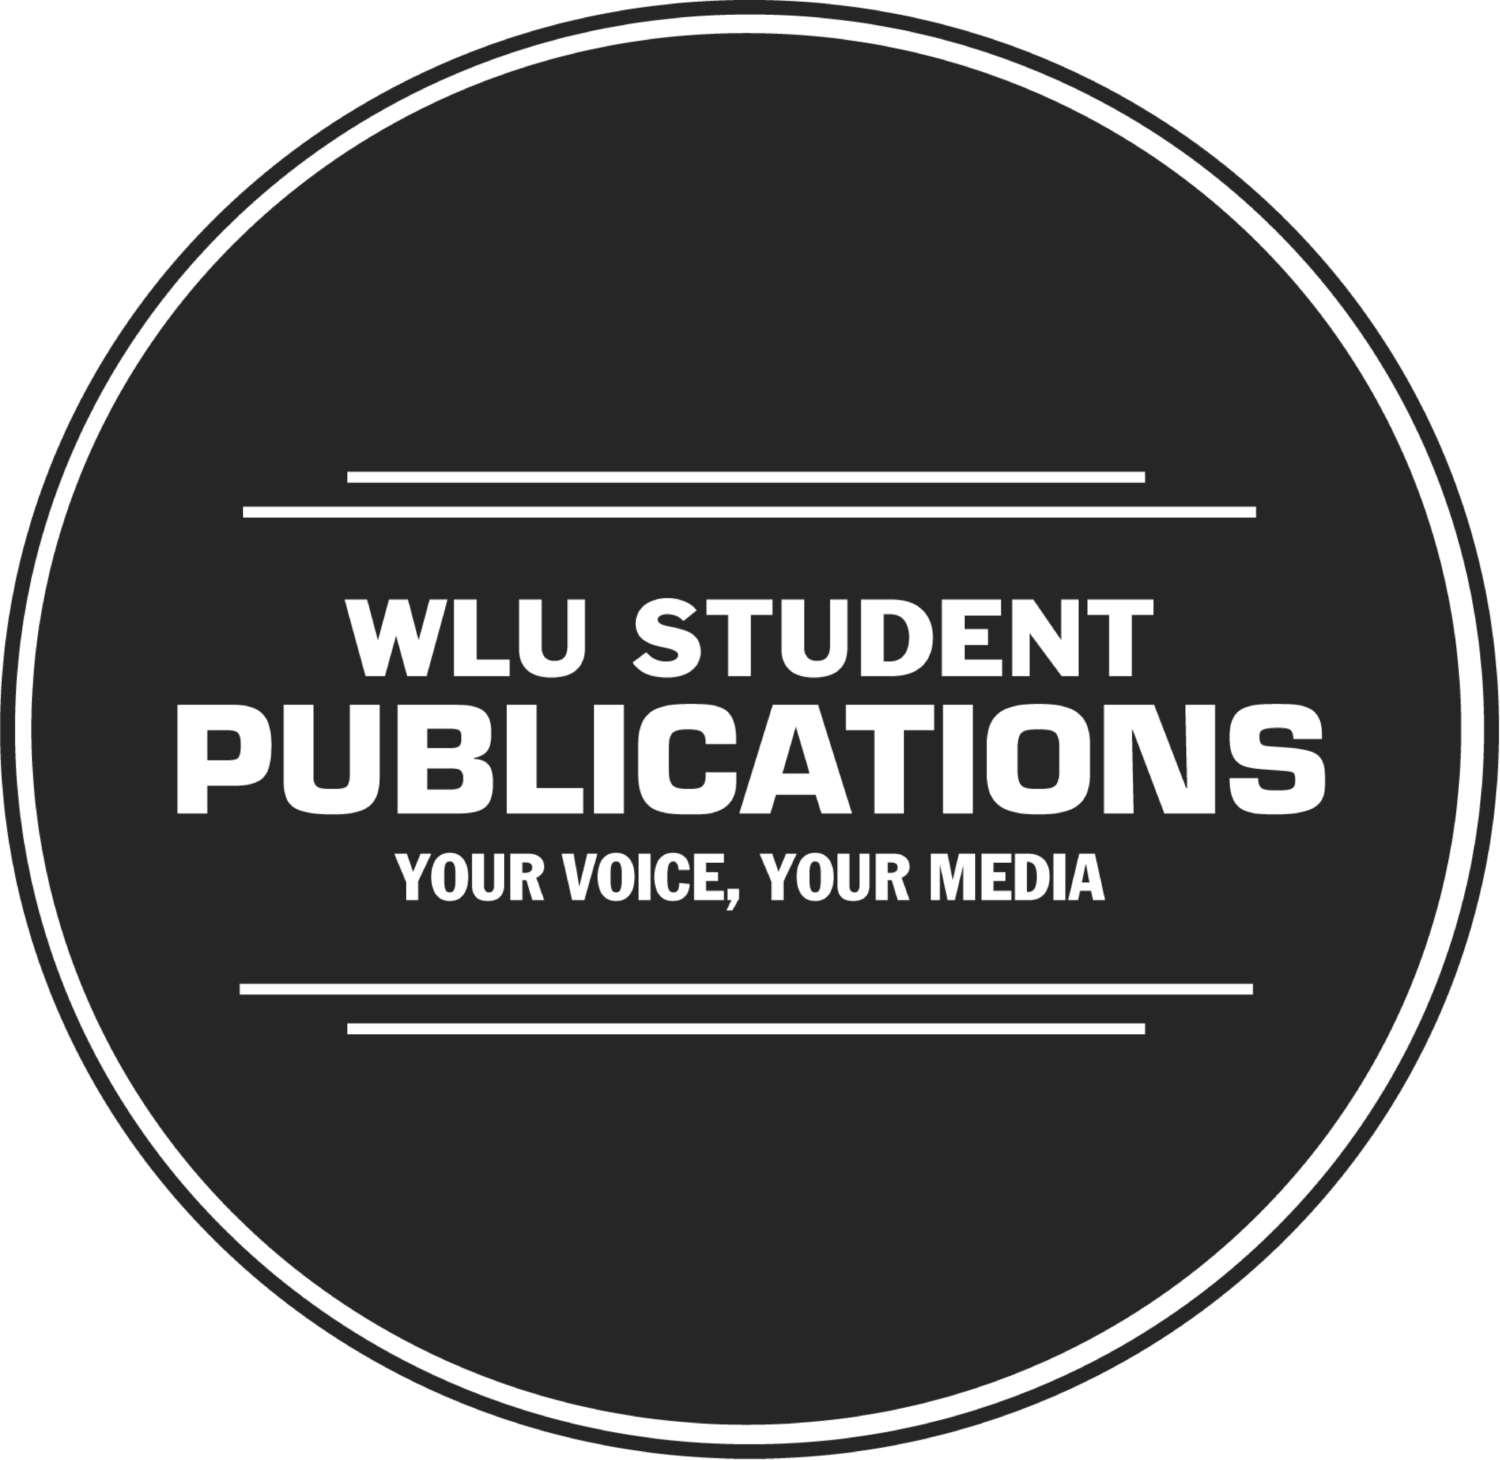 Wilfrid Laurier University Student Publication